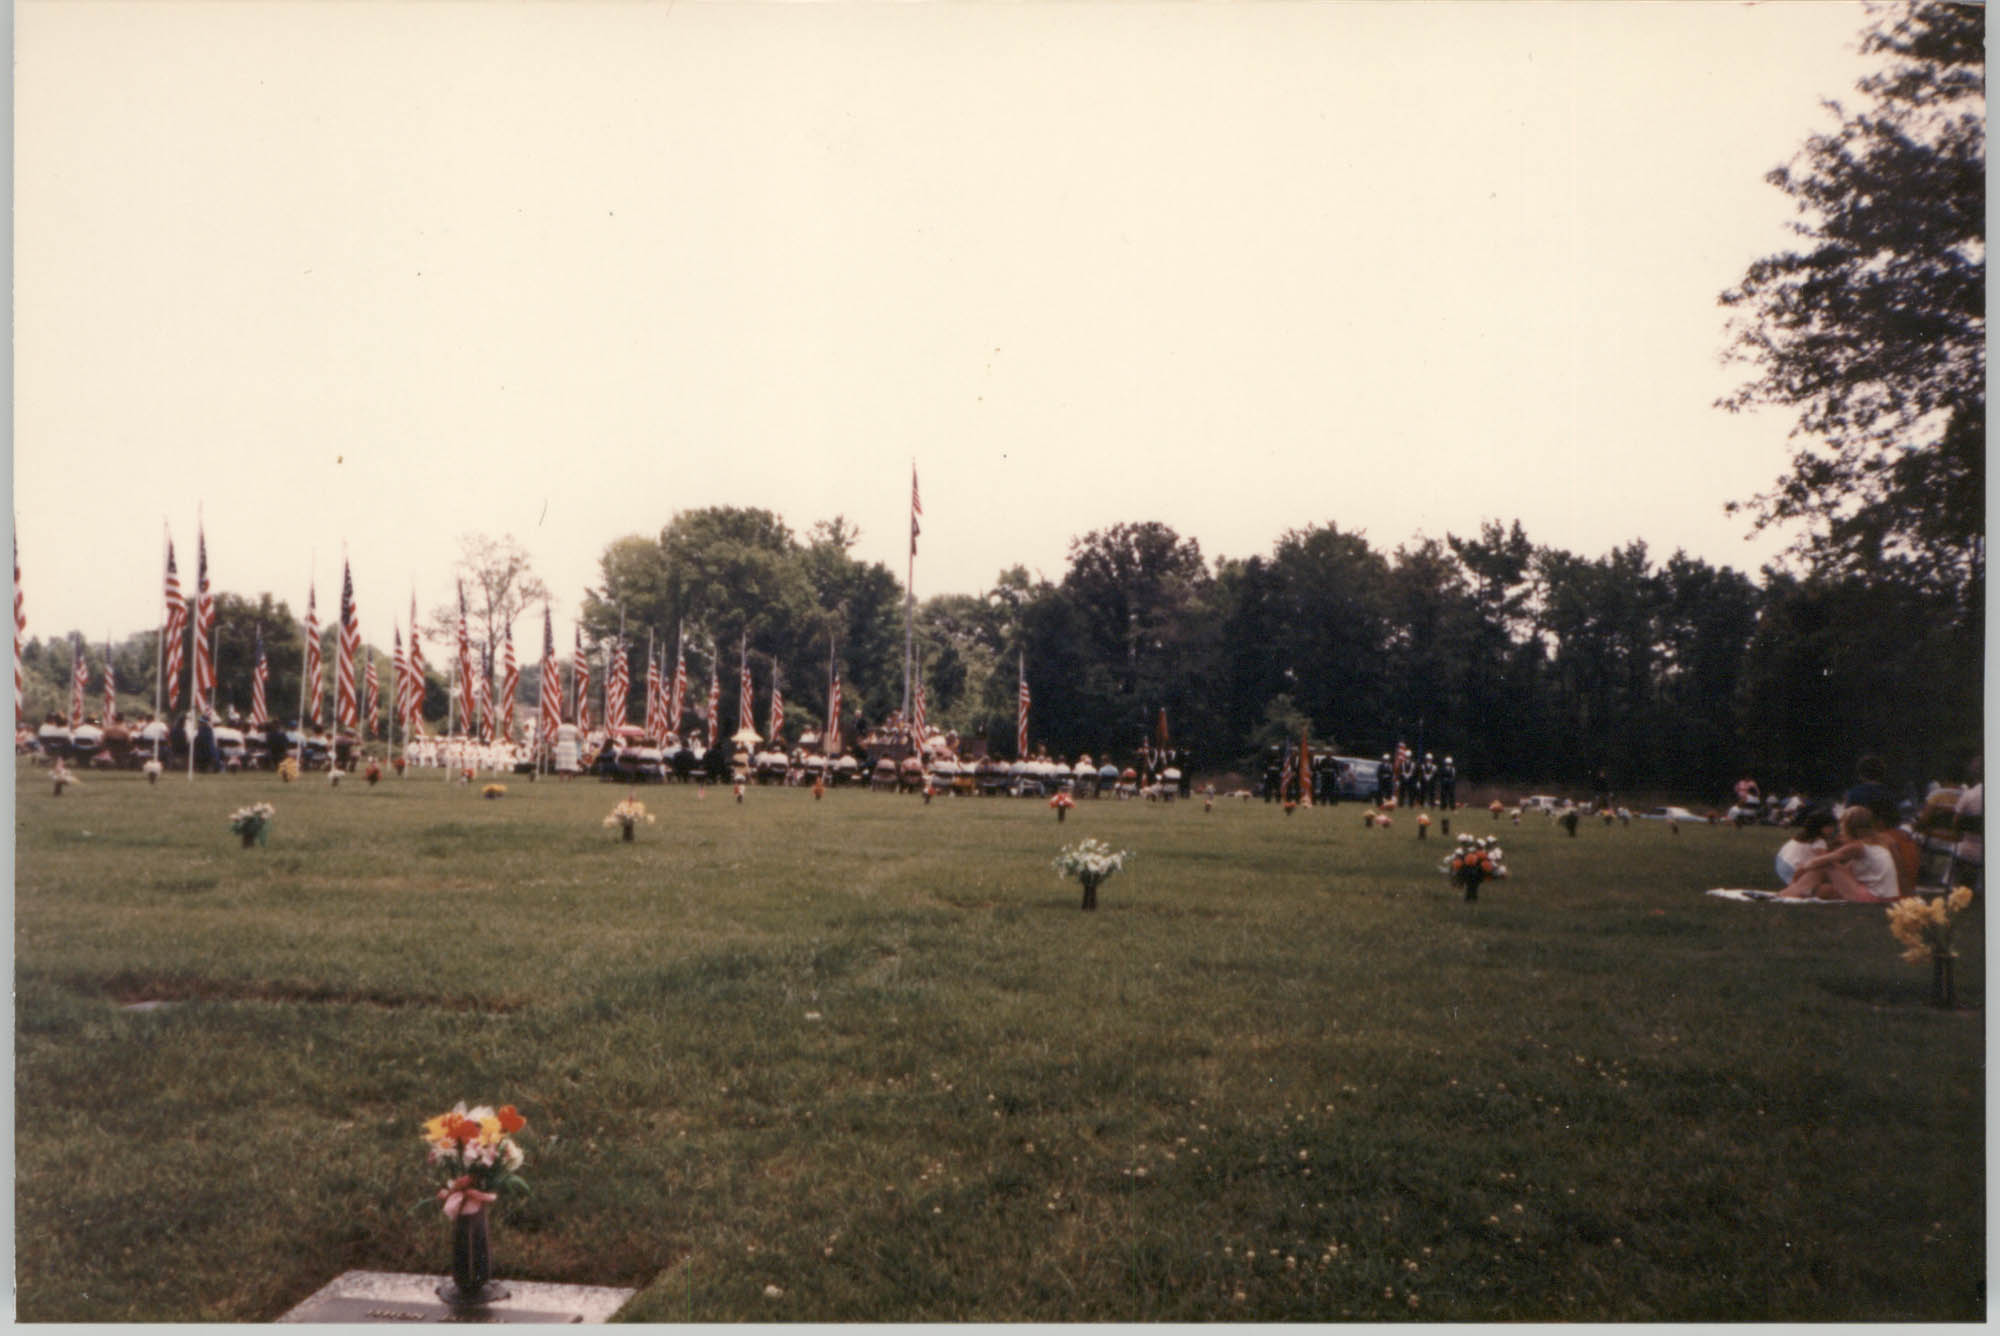 Photograph of a Ceremony at the Avenue of Flags in the Veterans Garden